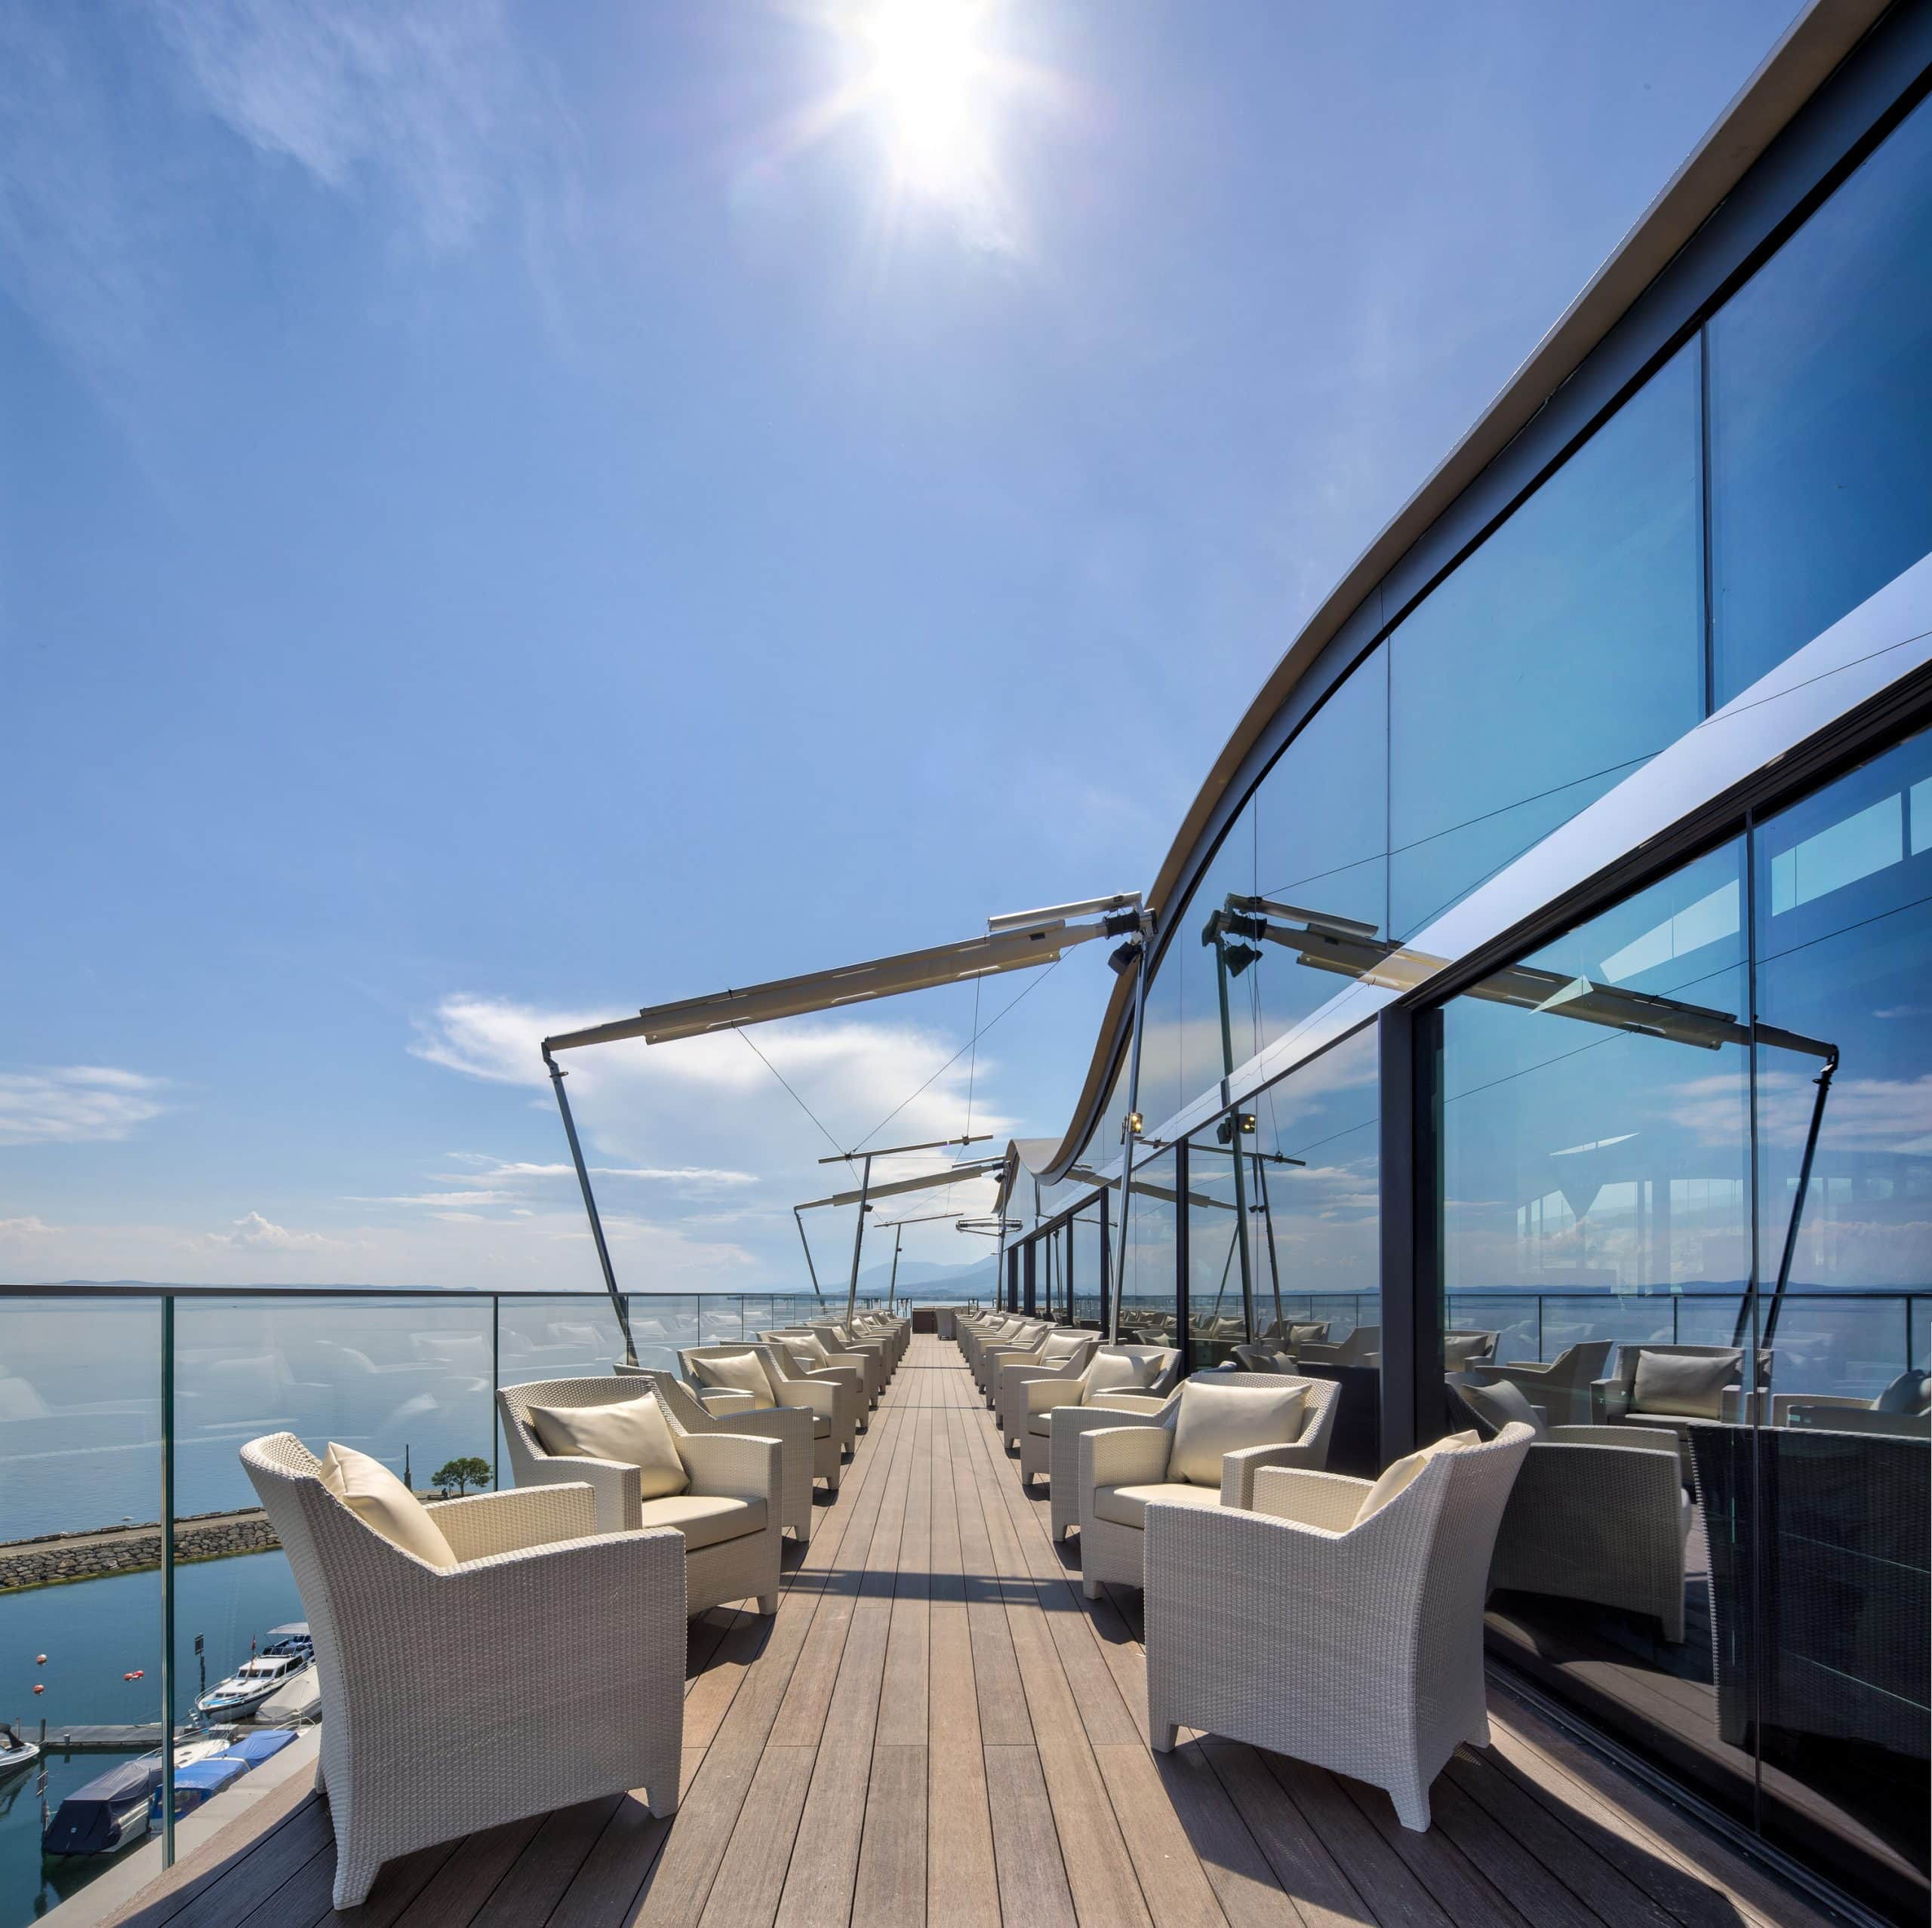 Luxury Hotel - Hotel Beaulac using electrochromic glass for solar shading and to reduce solar glare